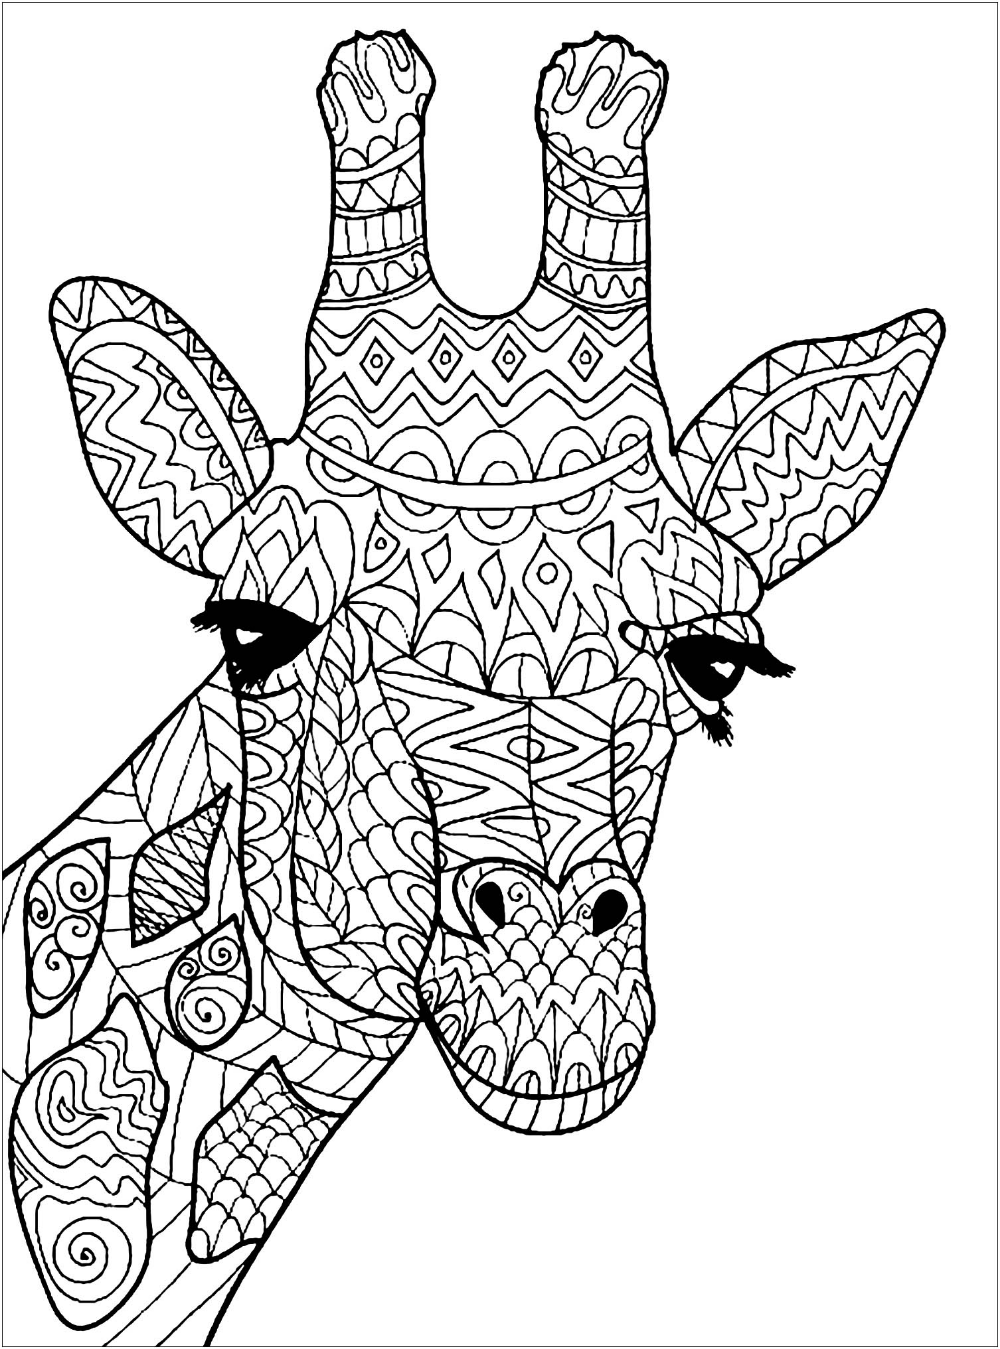 Color This Beautiful Giraffe Head With Cute Patterns Giraffe Coloring Pages Animal Coloring Pages Giraffe Colors